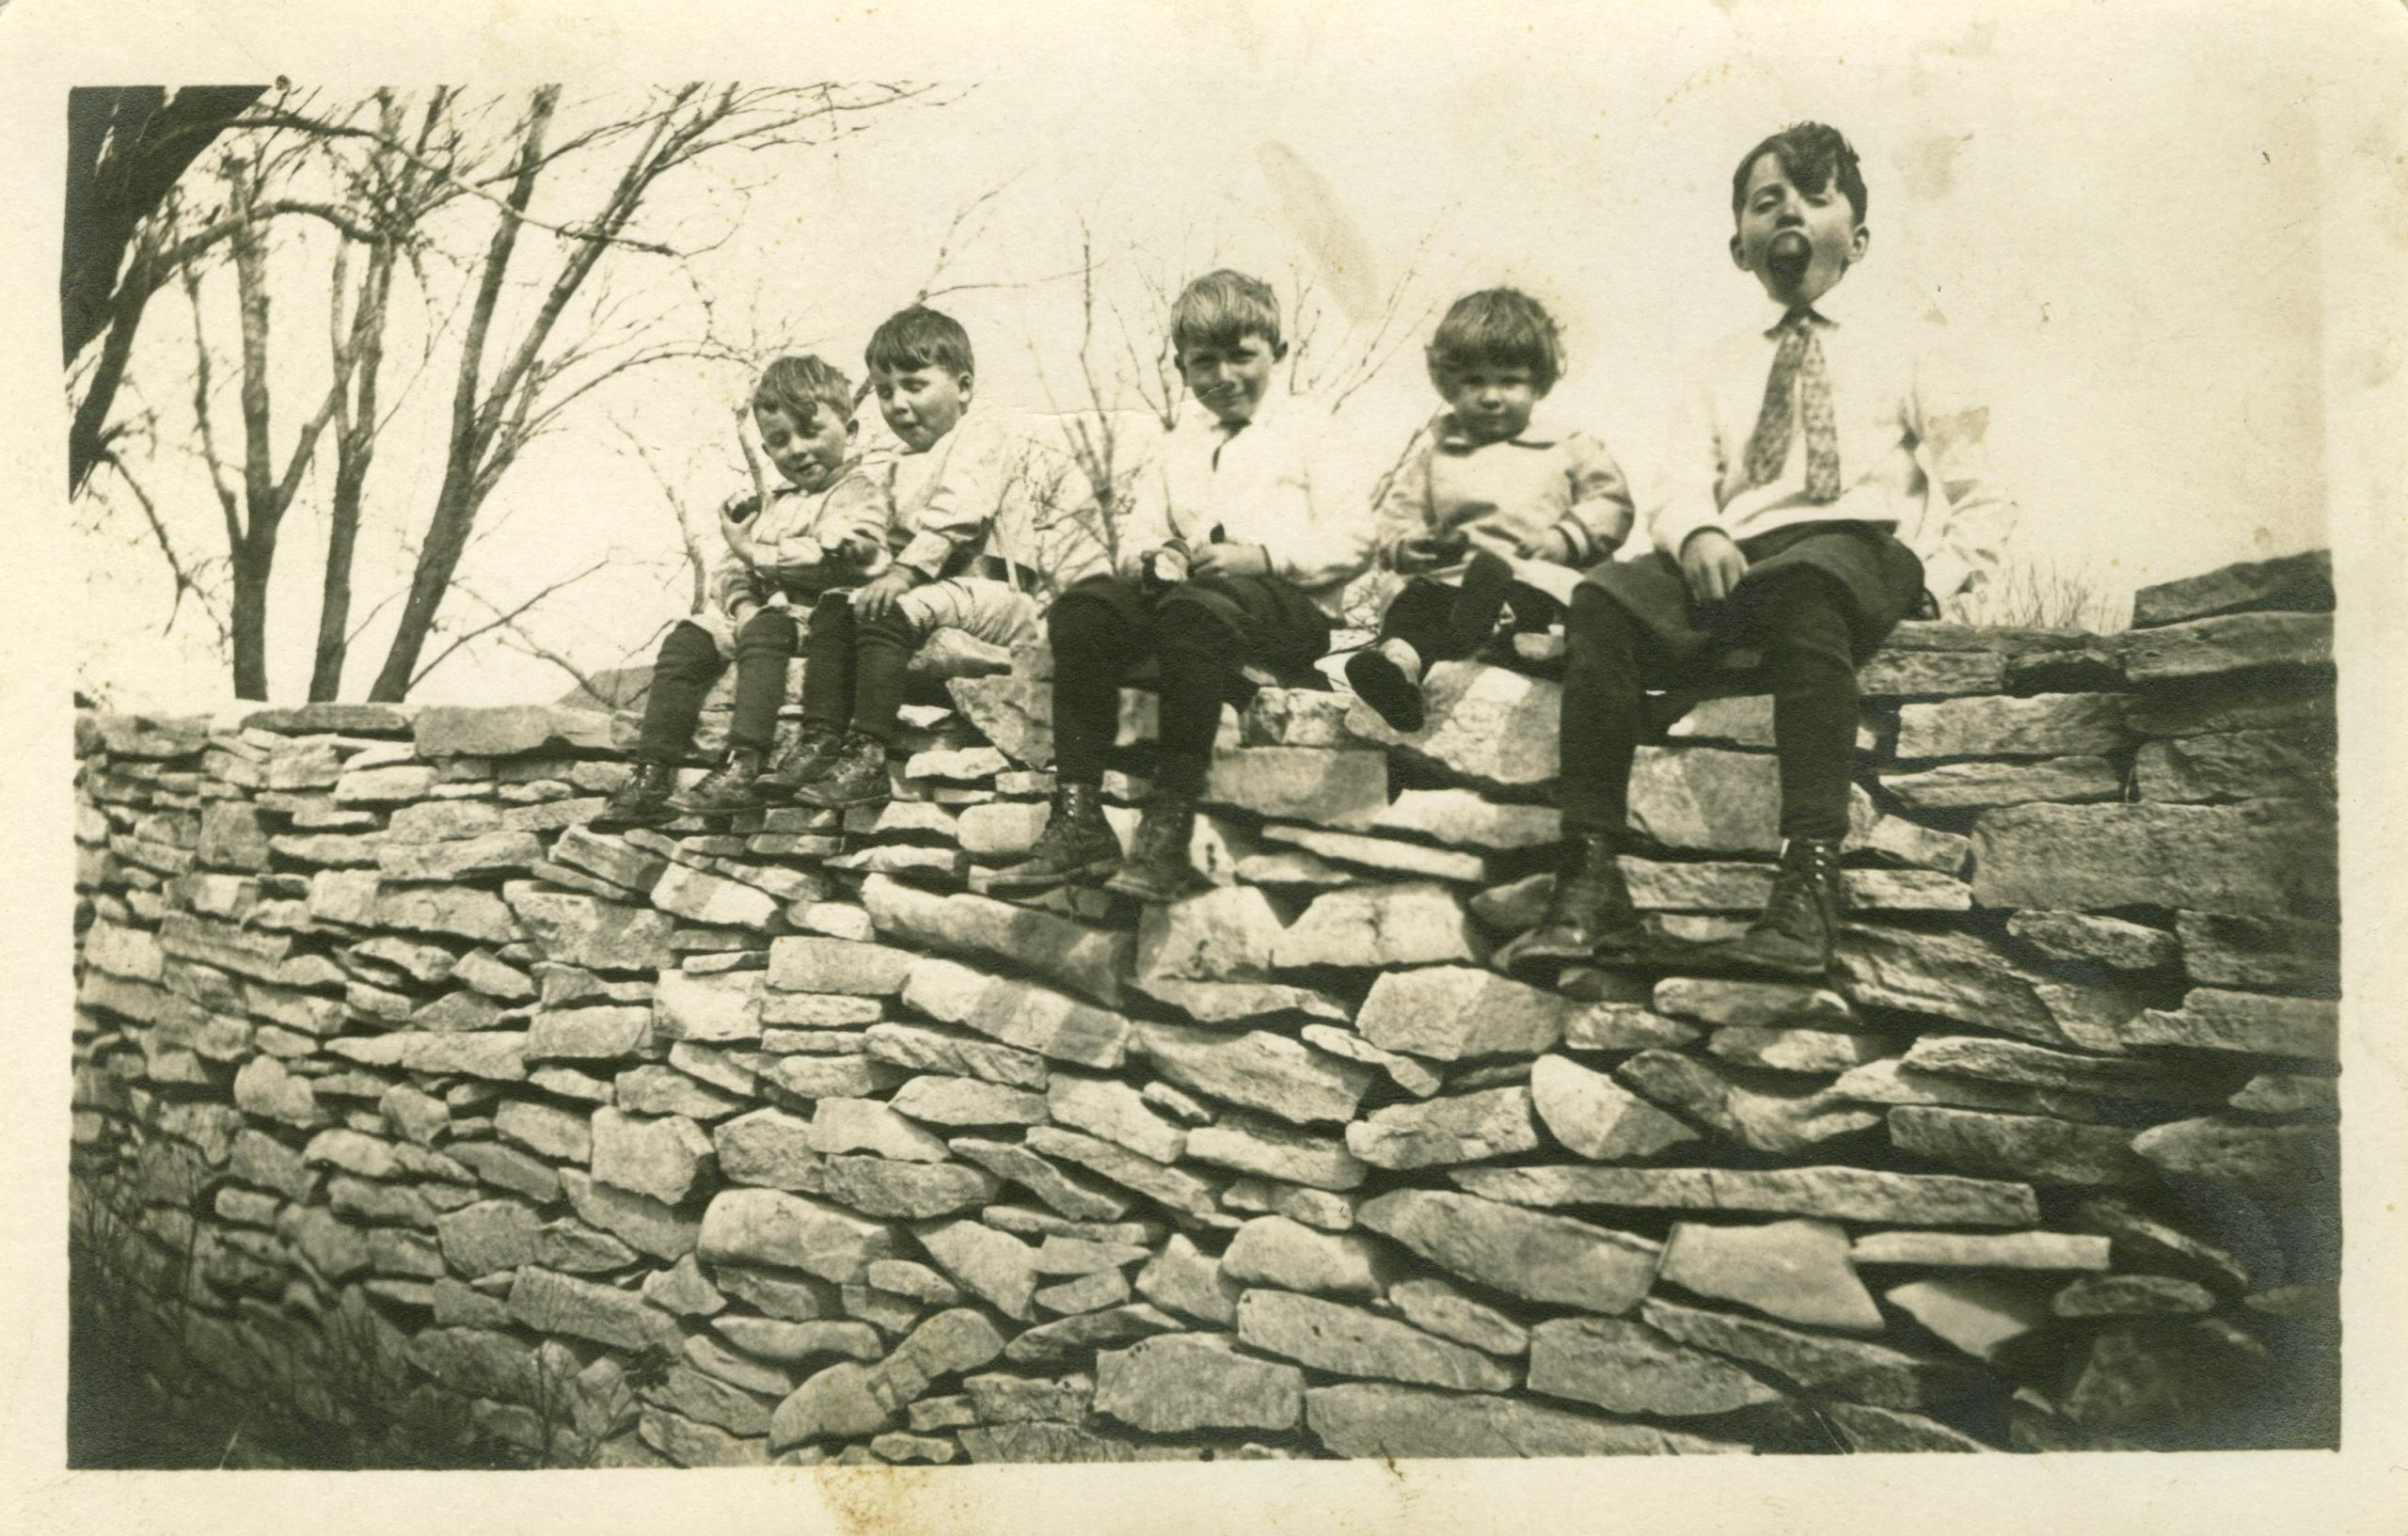 Children sitting on the stone fence